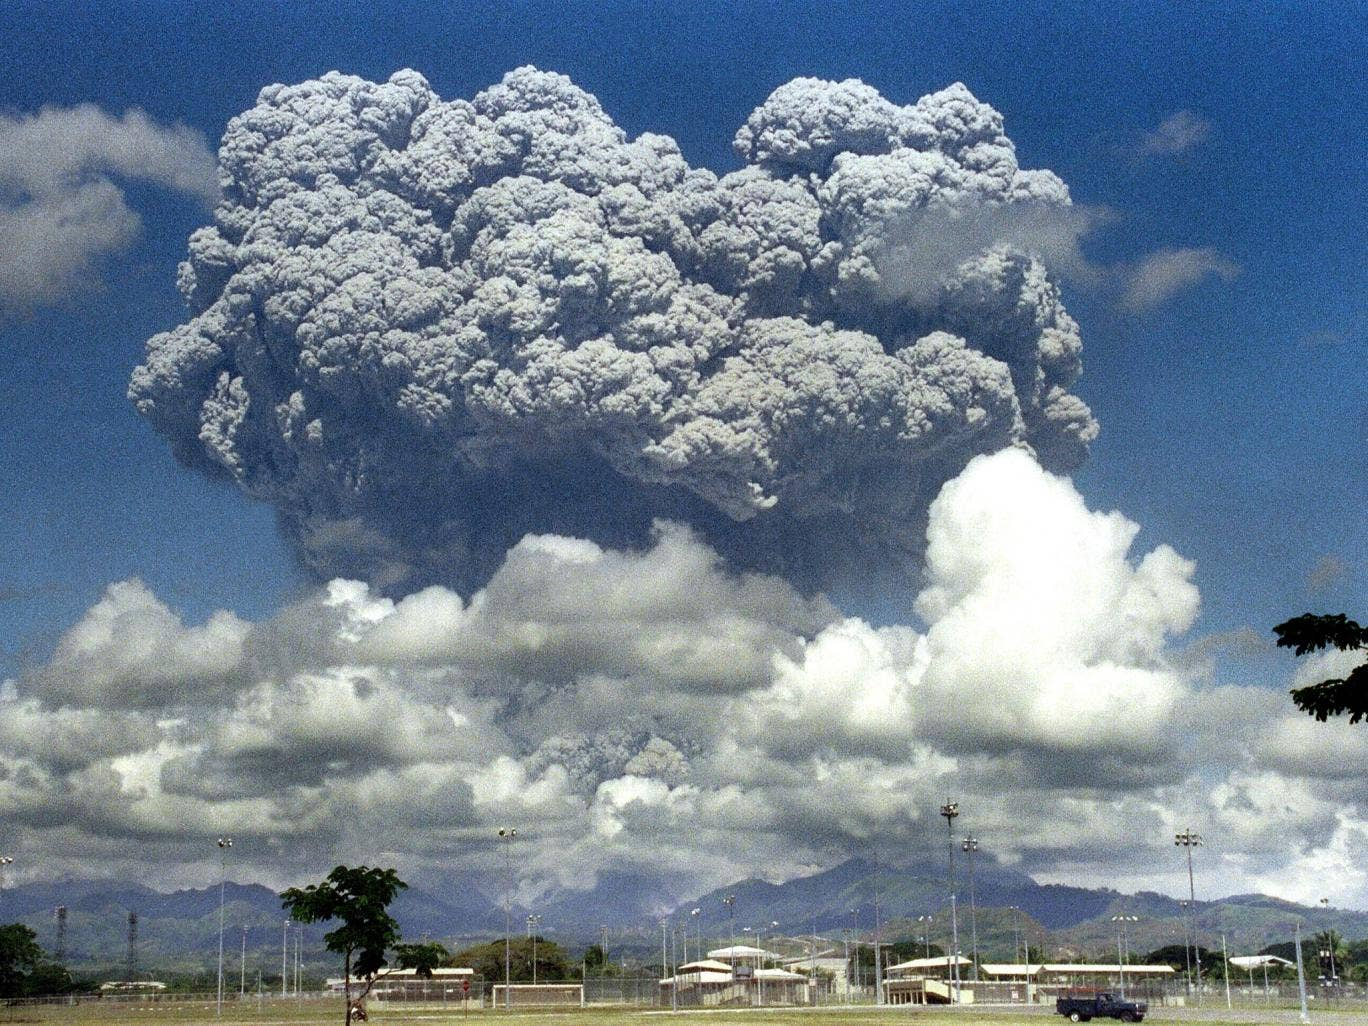 A giant cloud of volcanic debris rises some 20km above Mount Pinatubo in the Philippines in June 1991